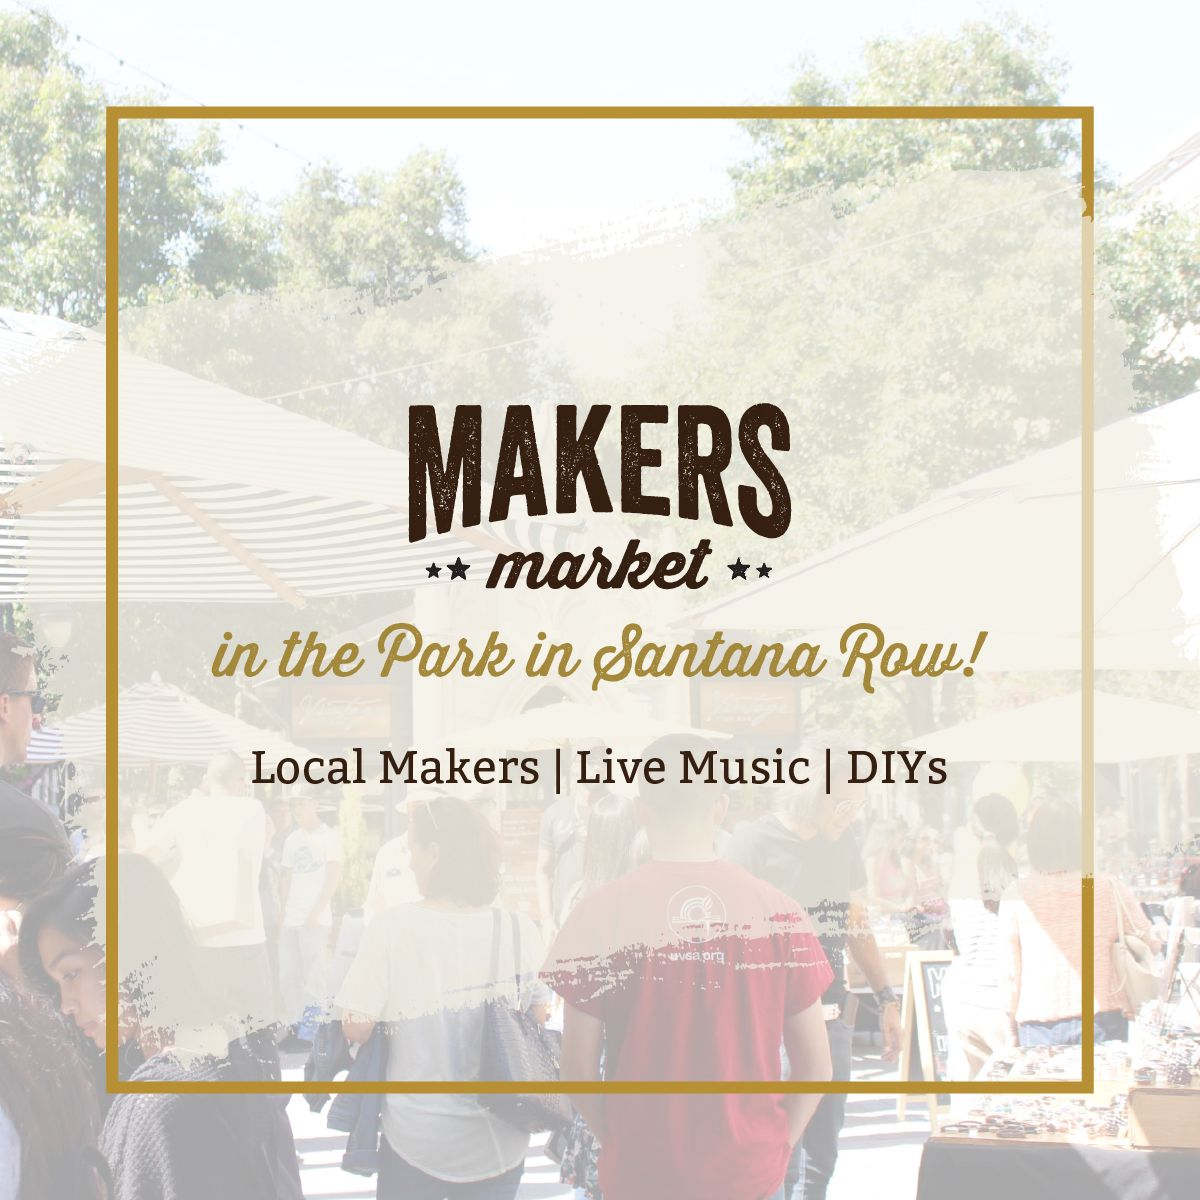 Makers Market in the Park - An Open Air Craft Market